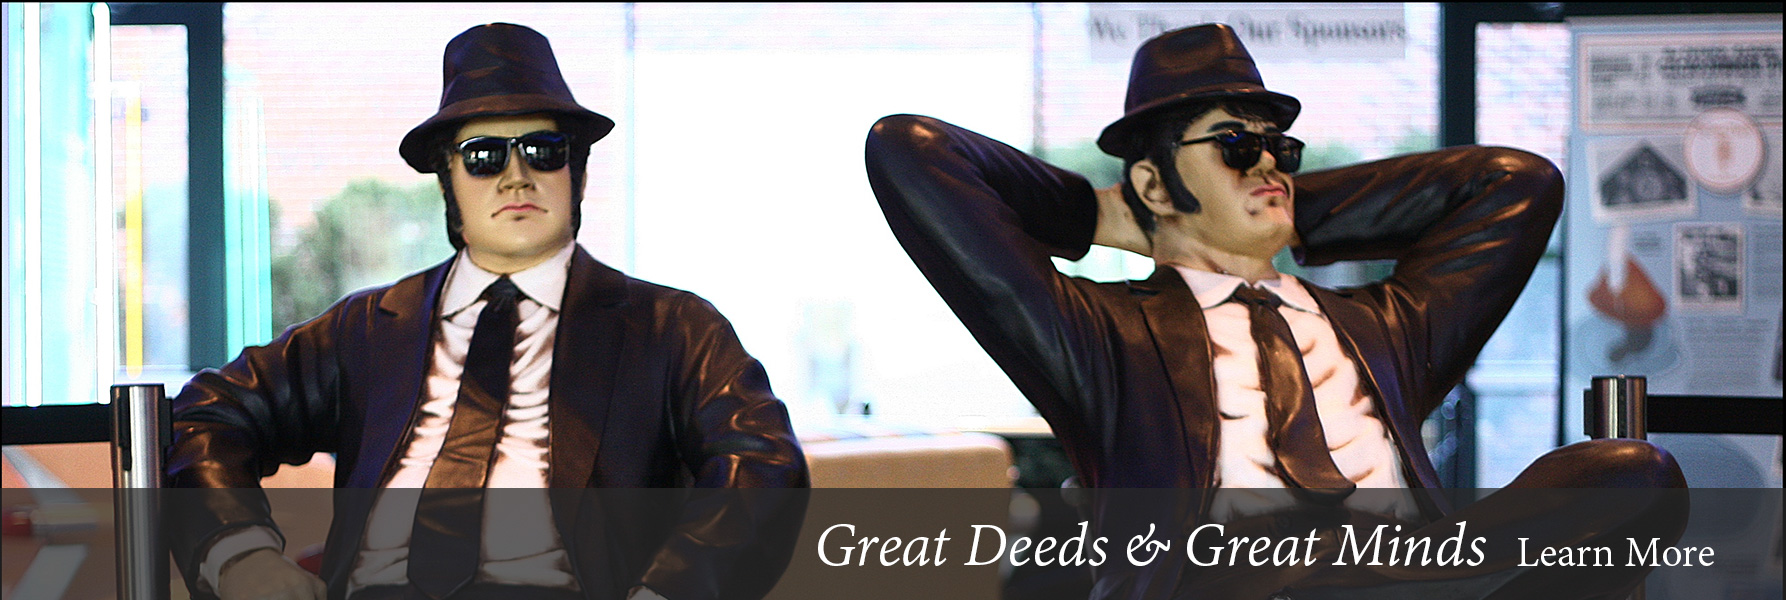 Great Deeds and Great Minds